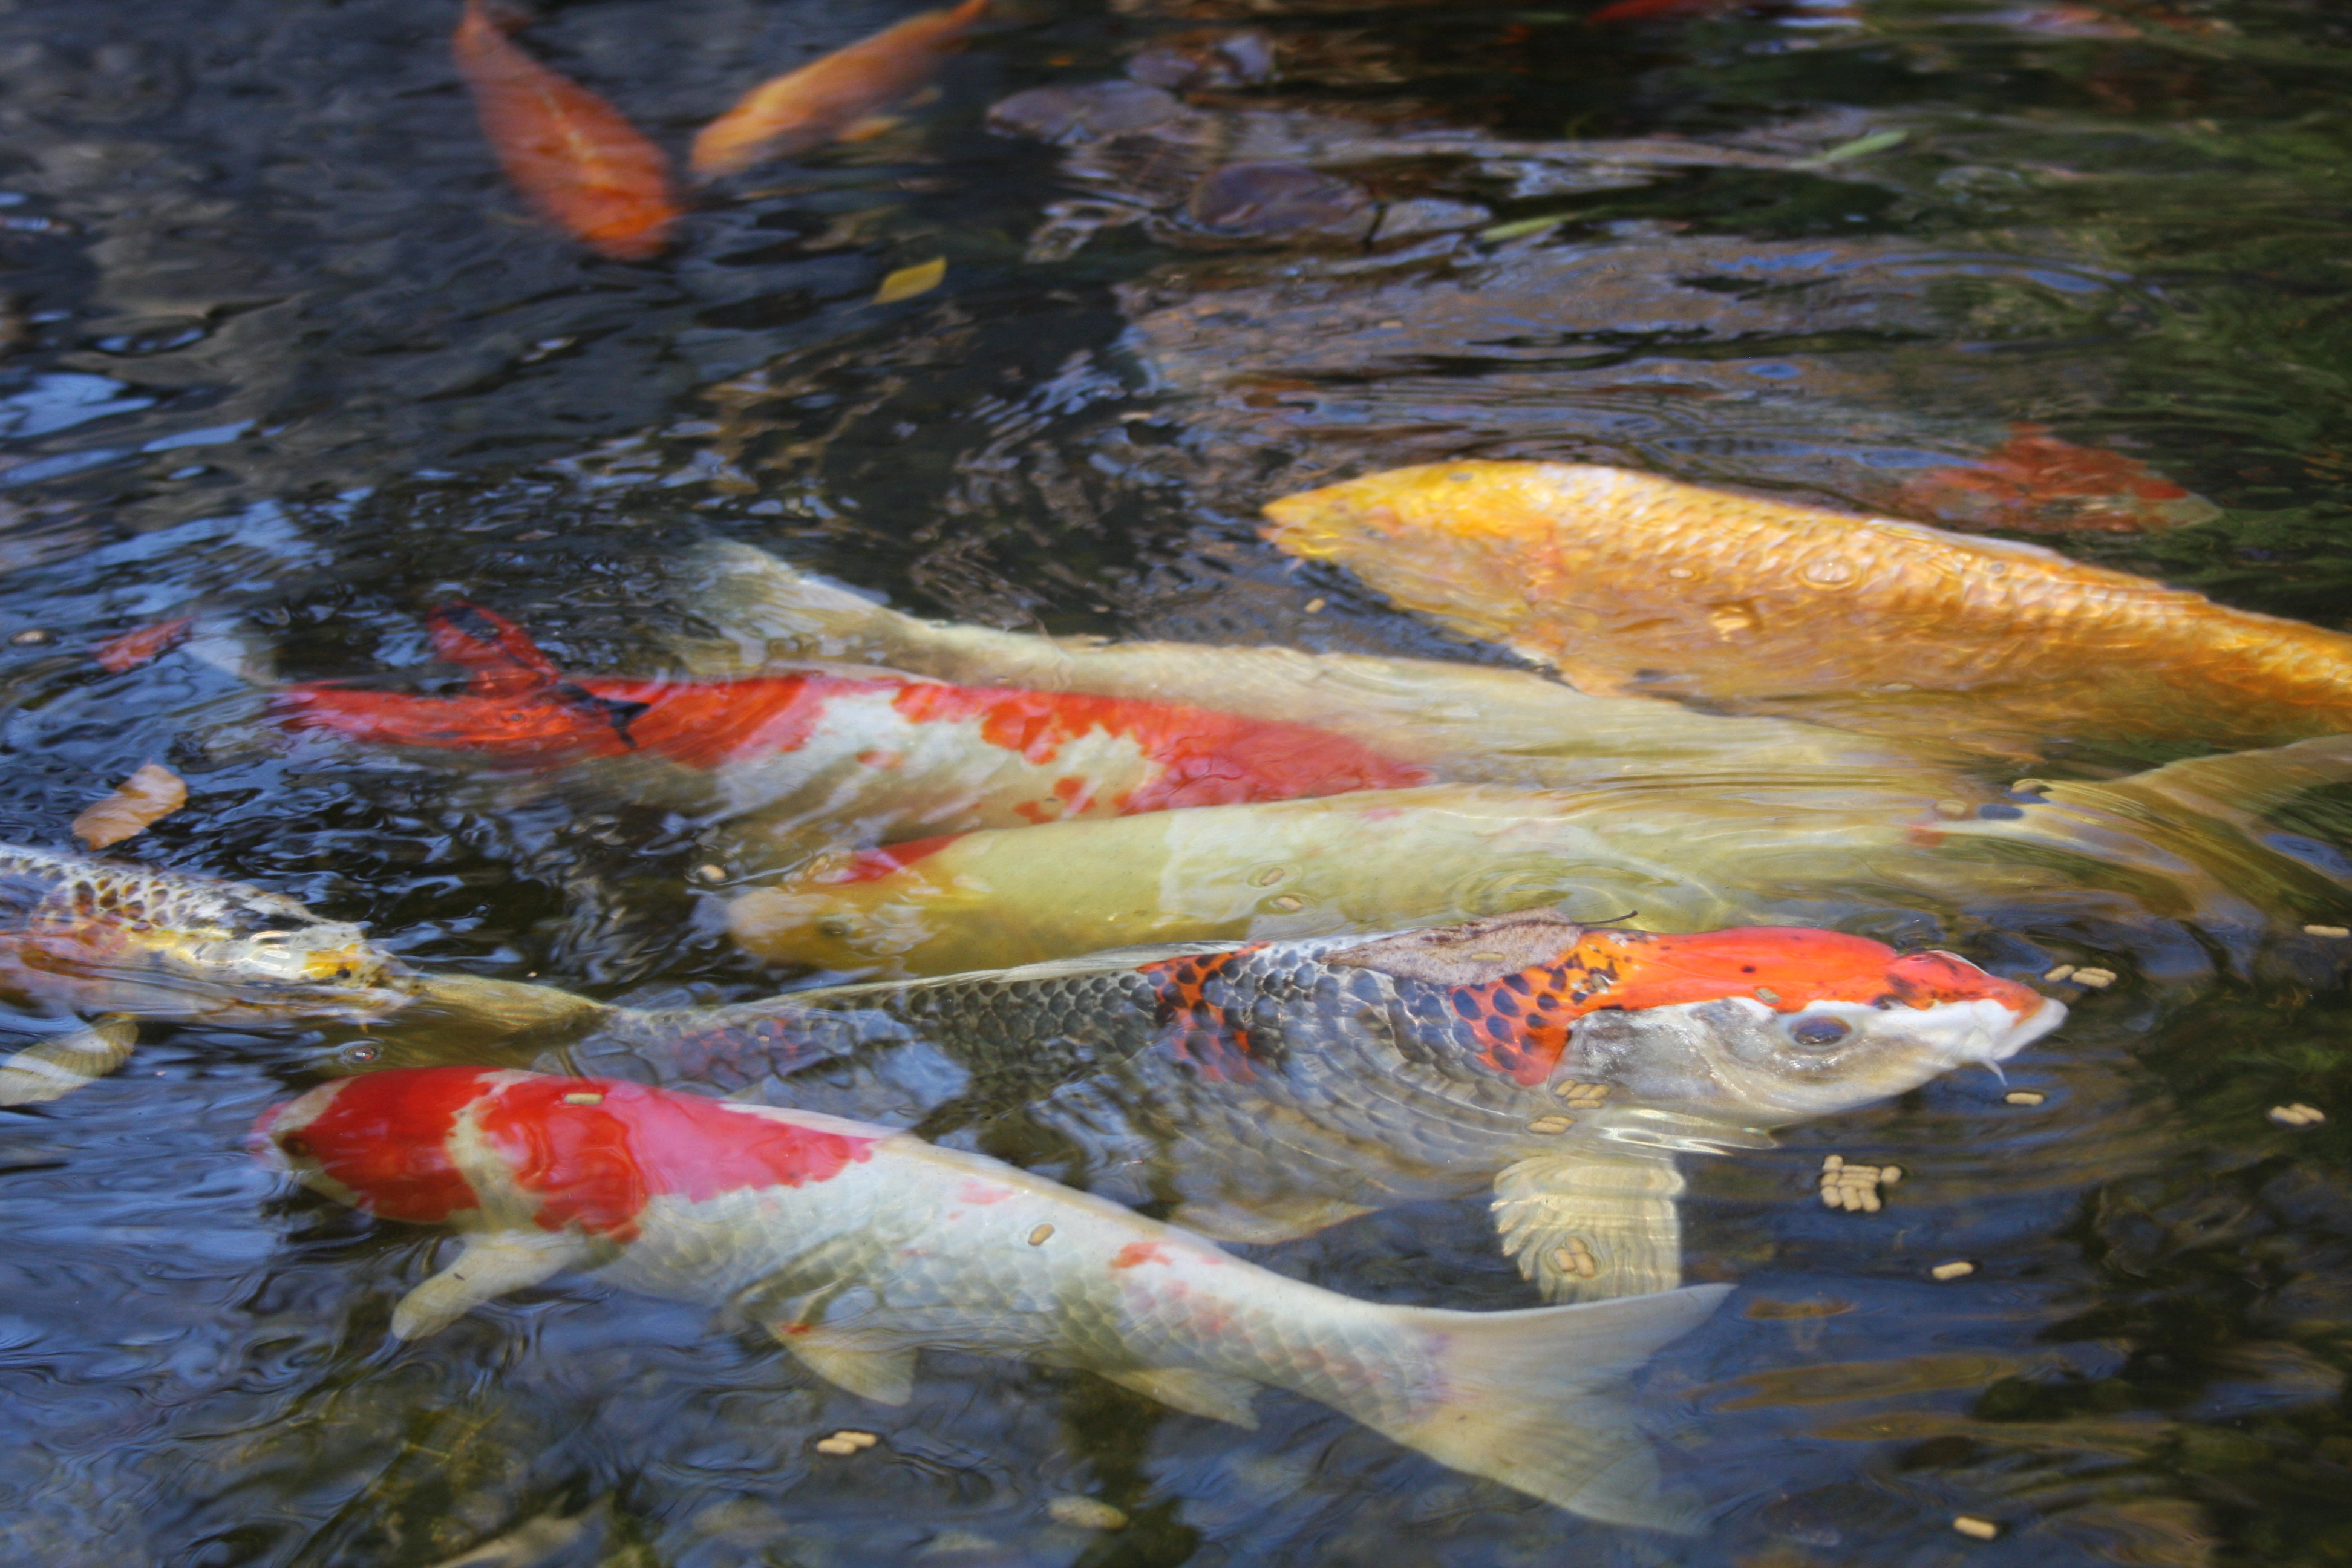 Koi fish pond waterfall best waterfall 2017 for Koi fish pool